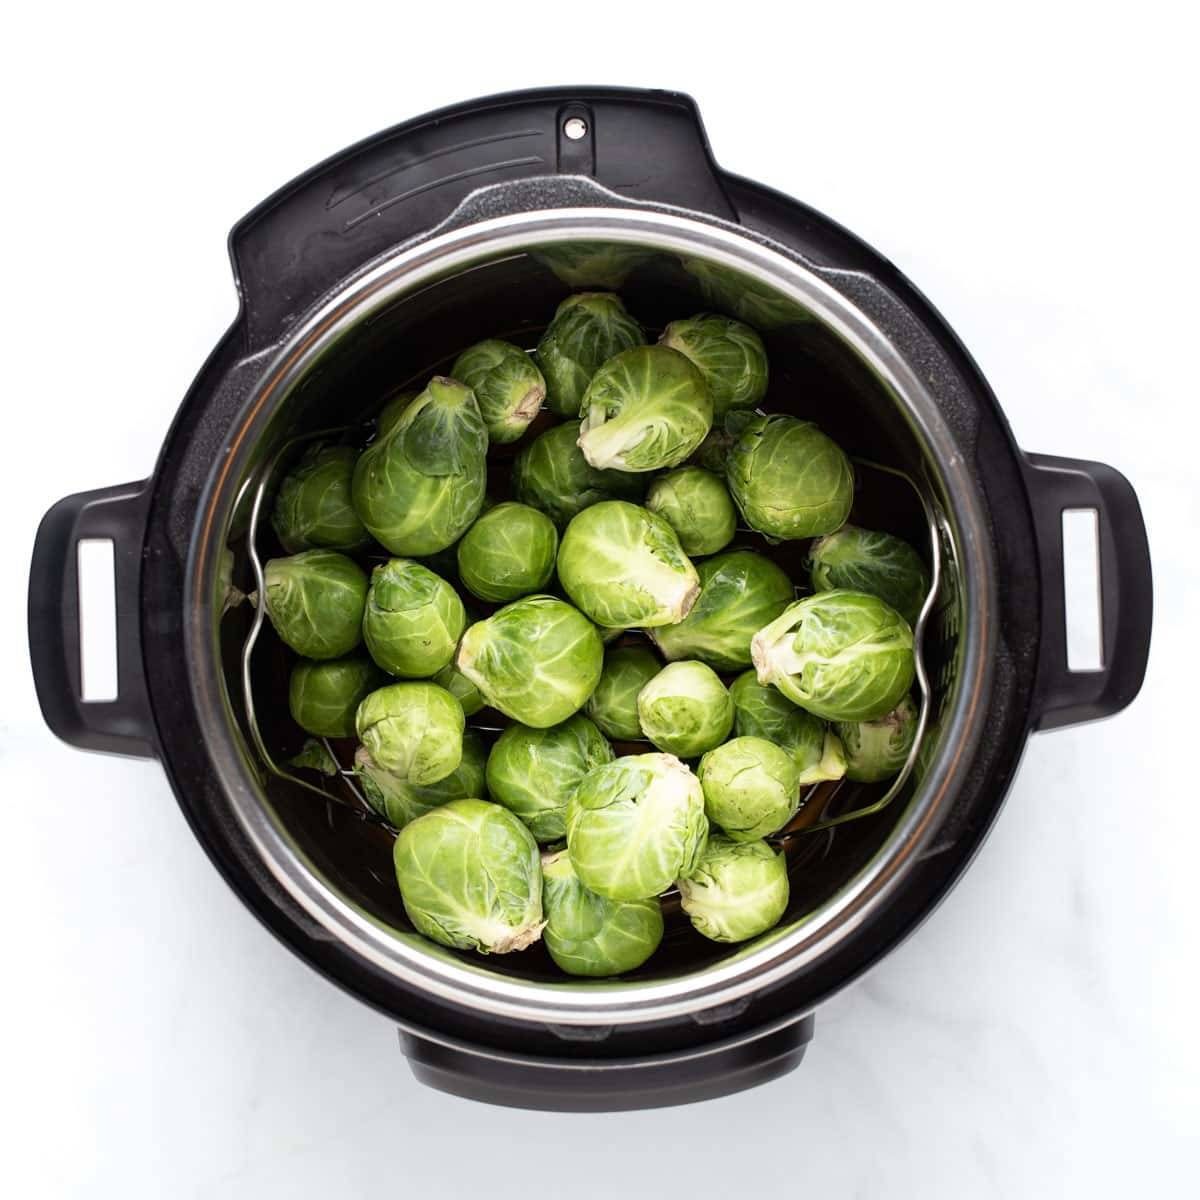 Brussels sprouts in the Instant Pot.